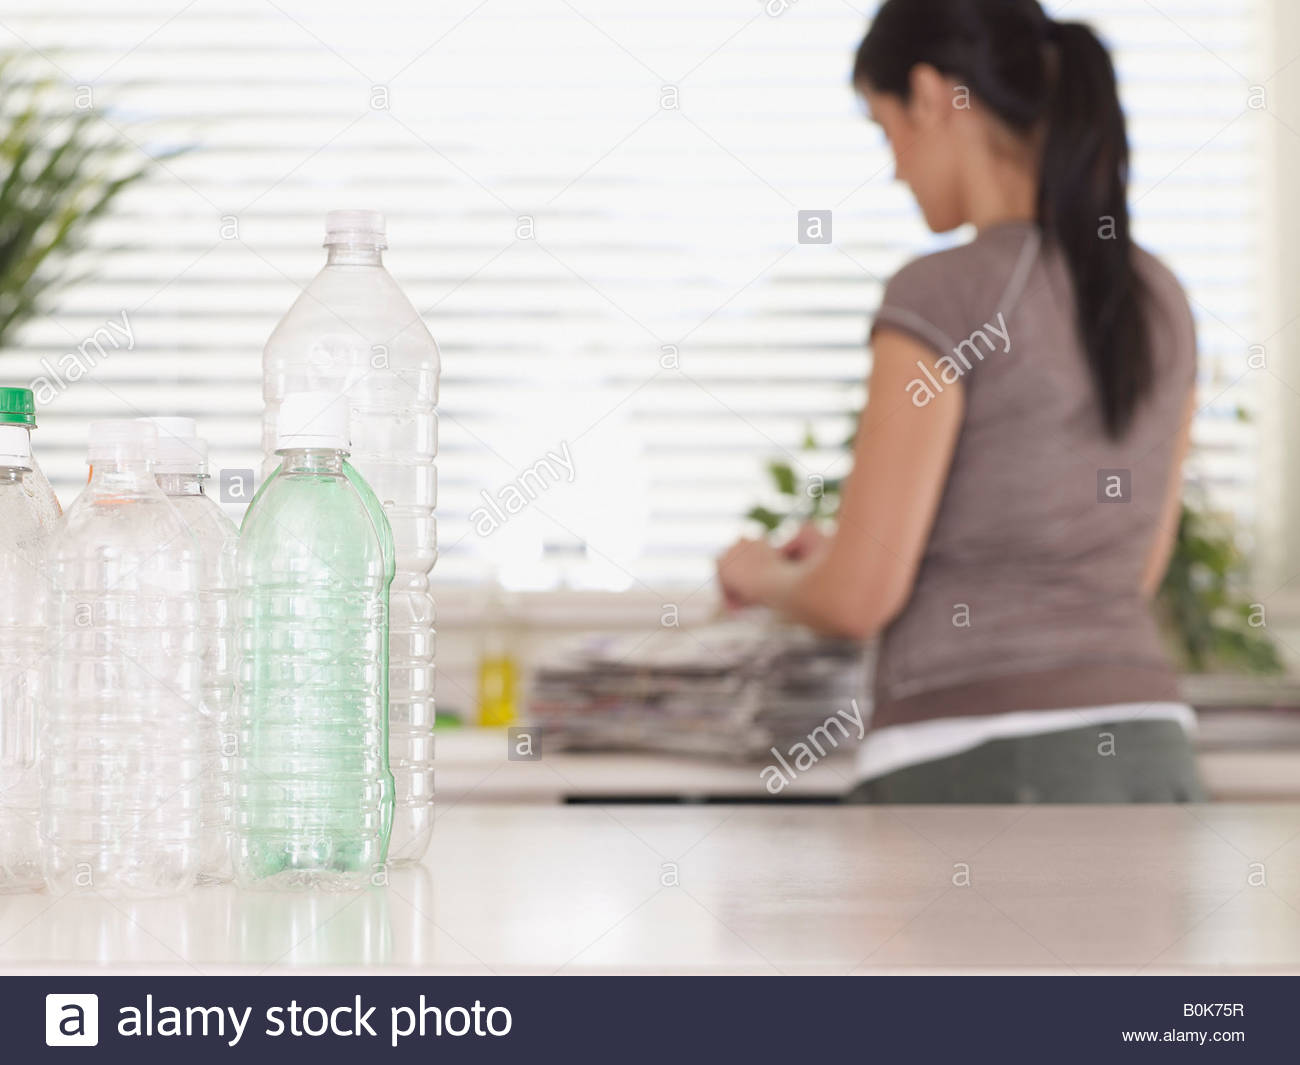 Woman in kitchen with recyclable materials - Stock Image